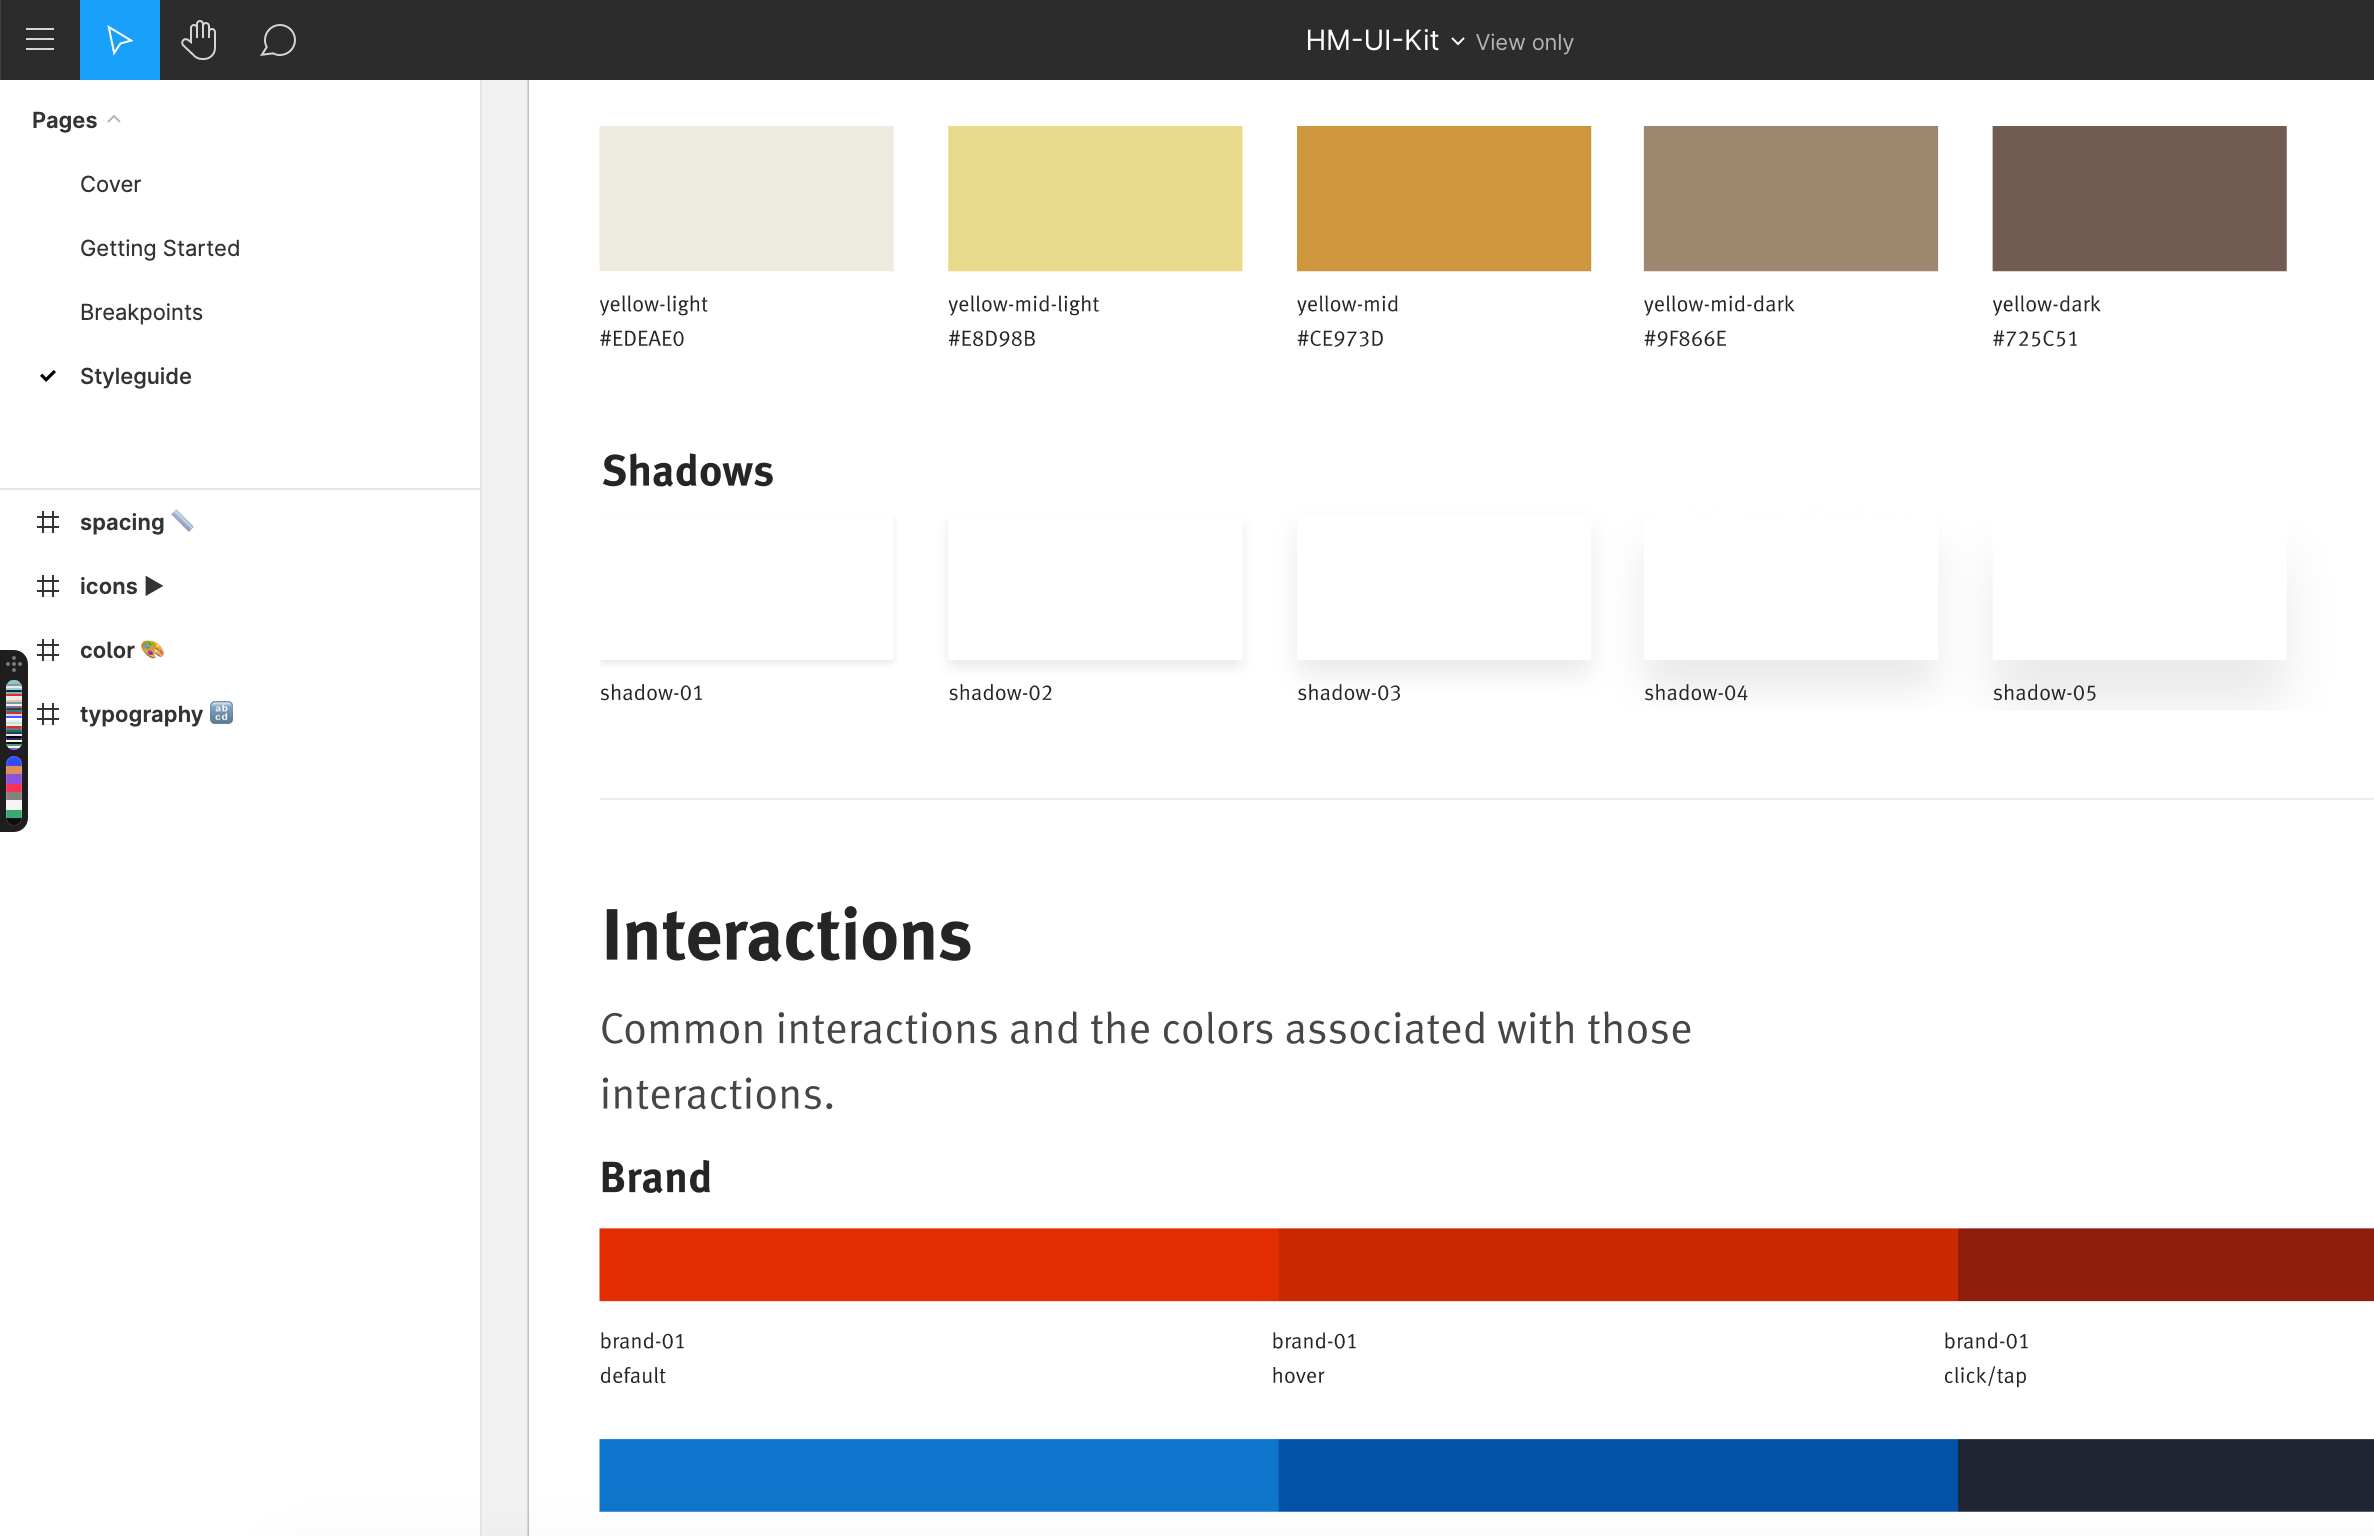 partial screenshot of a style guide showing values for color swatches and box shadow styles